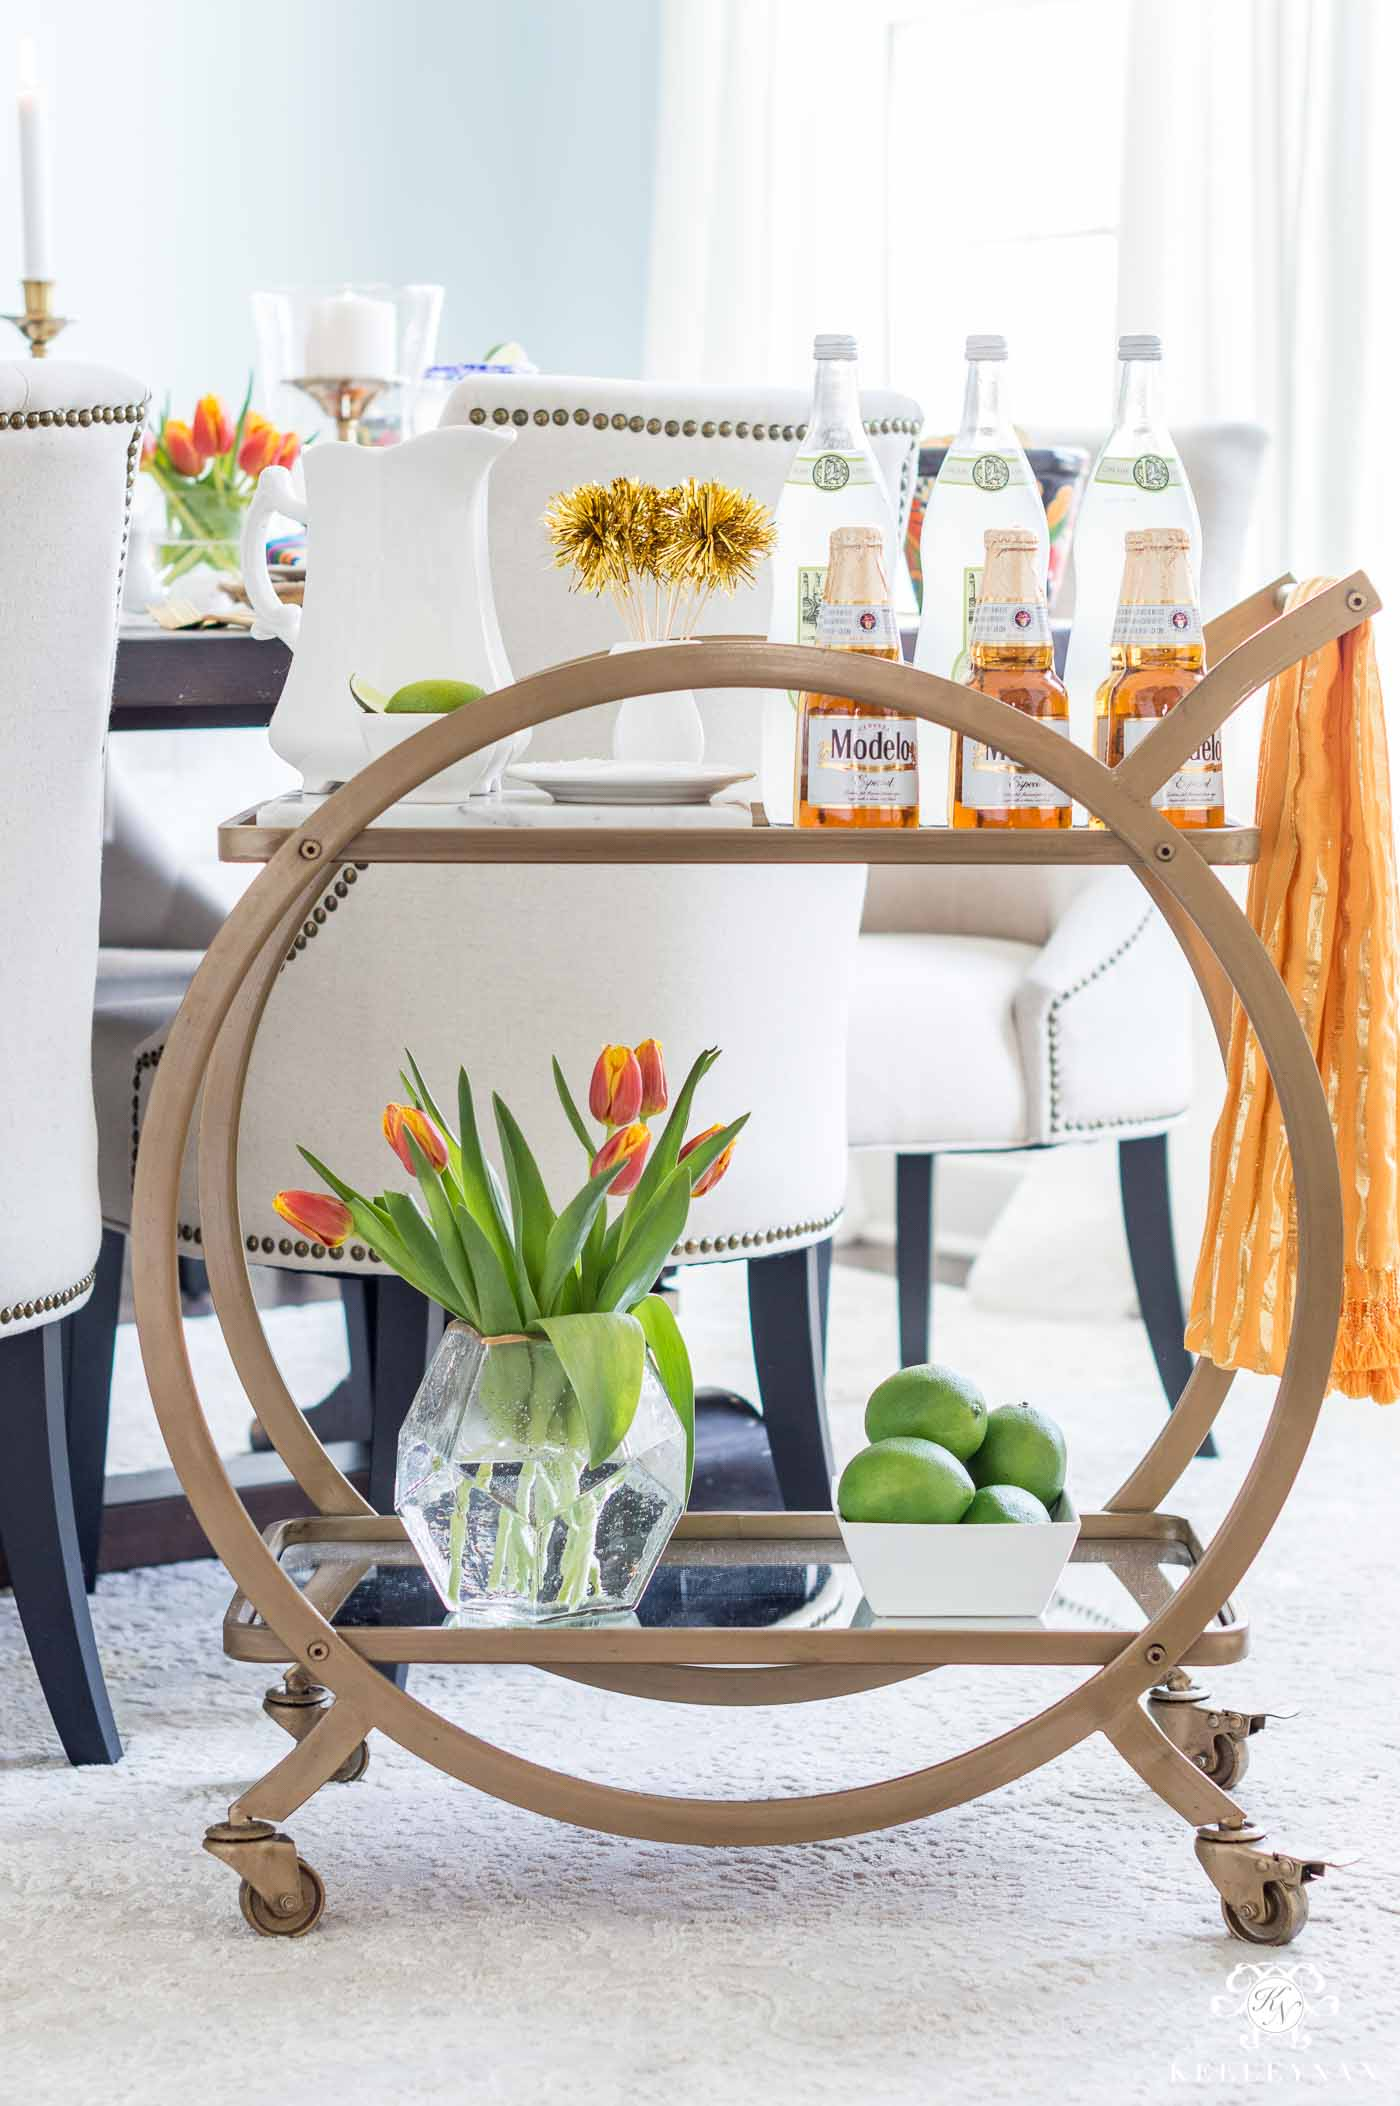 Mexican themed bar cart